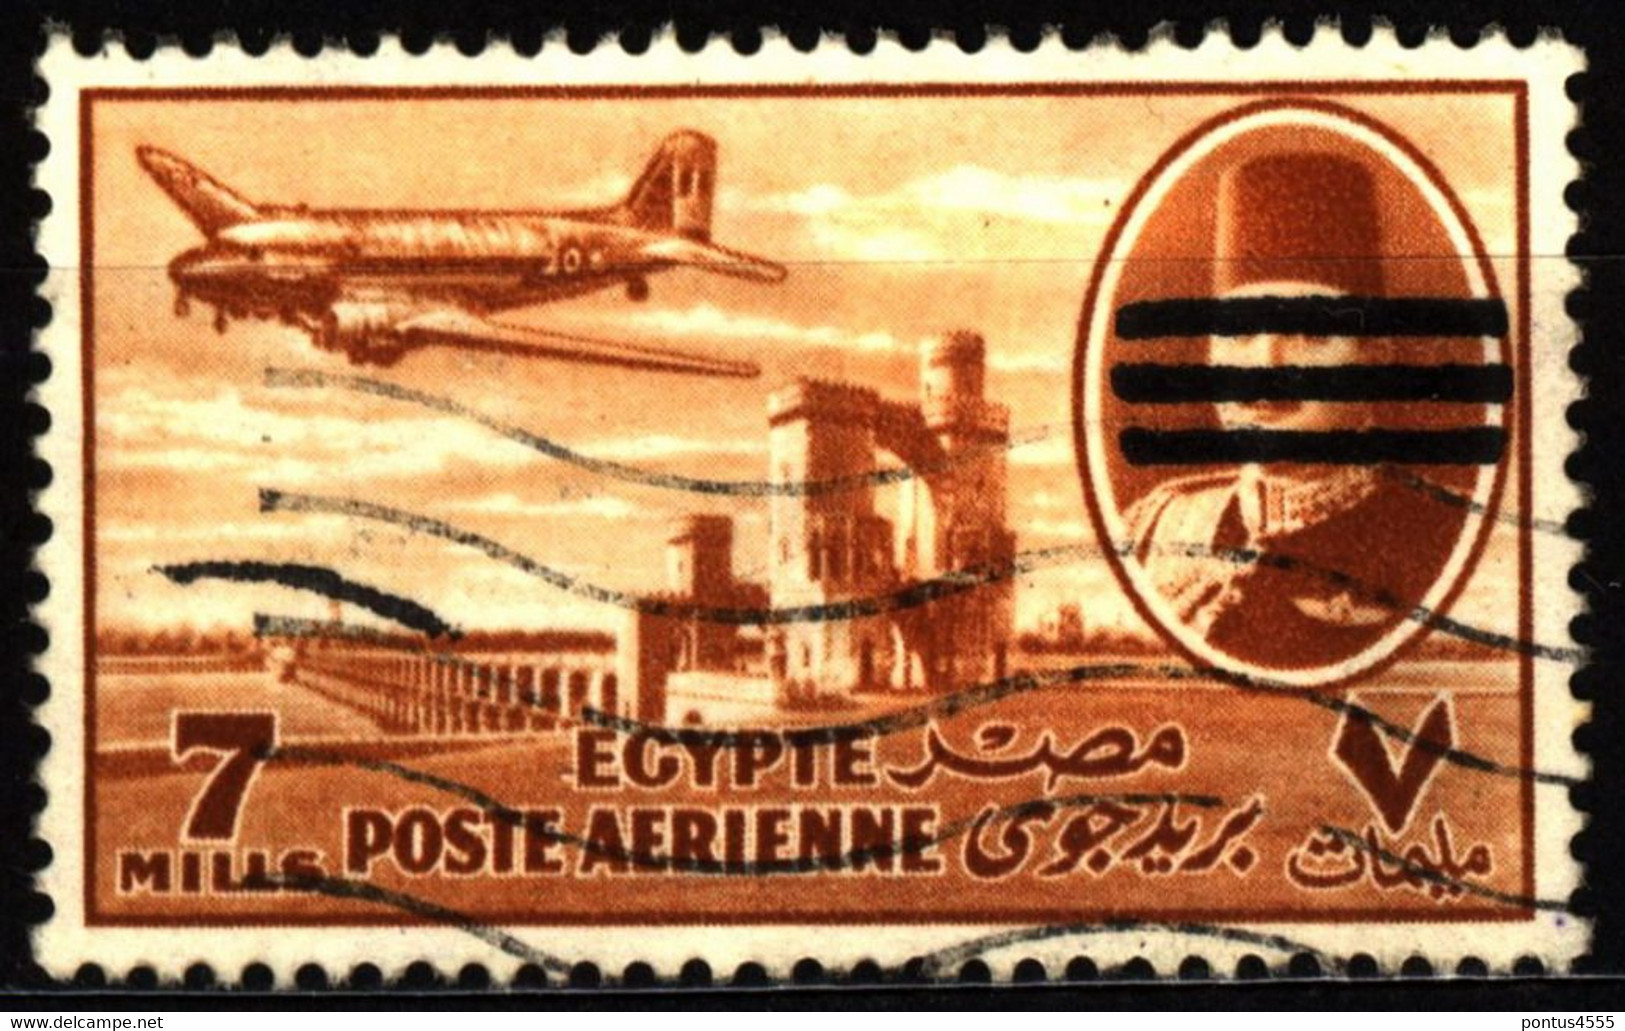 Egypt 1953 Mi 450 Air Post With Three Bars - Used Stamps